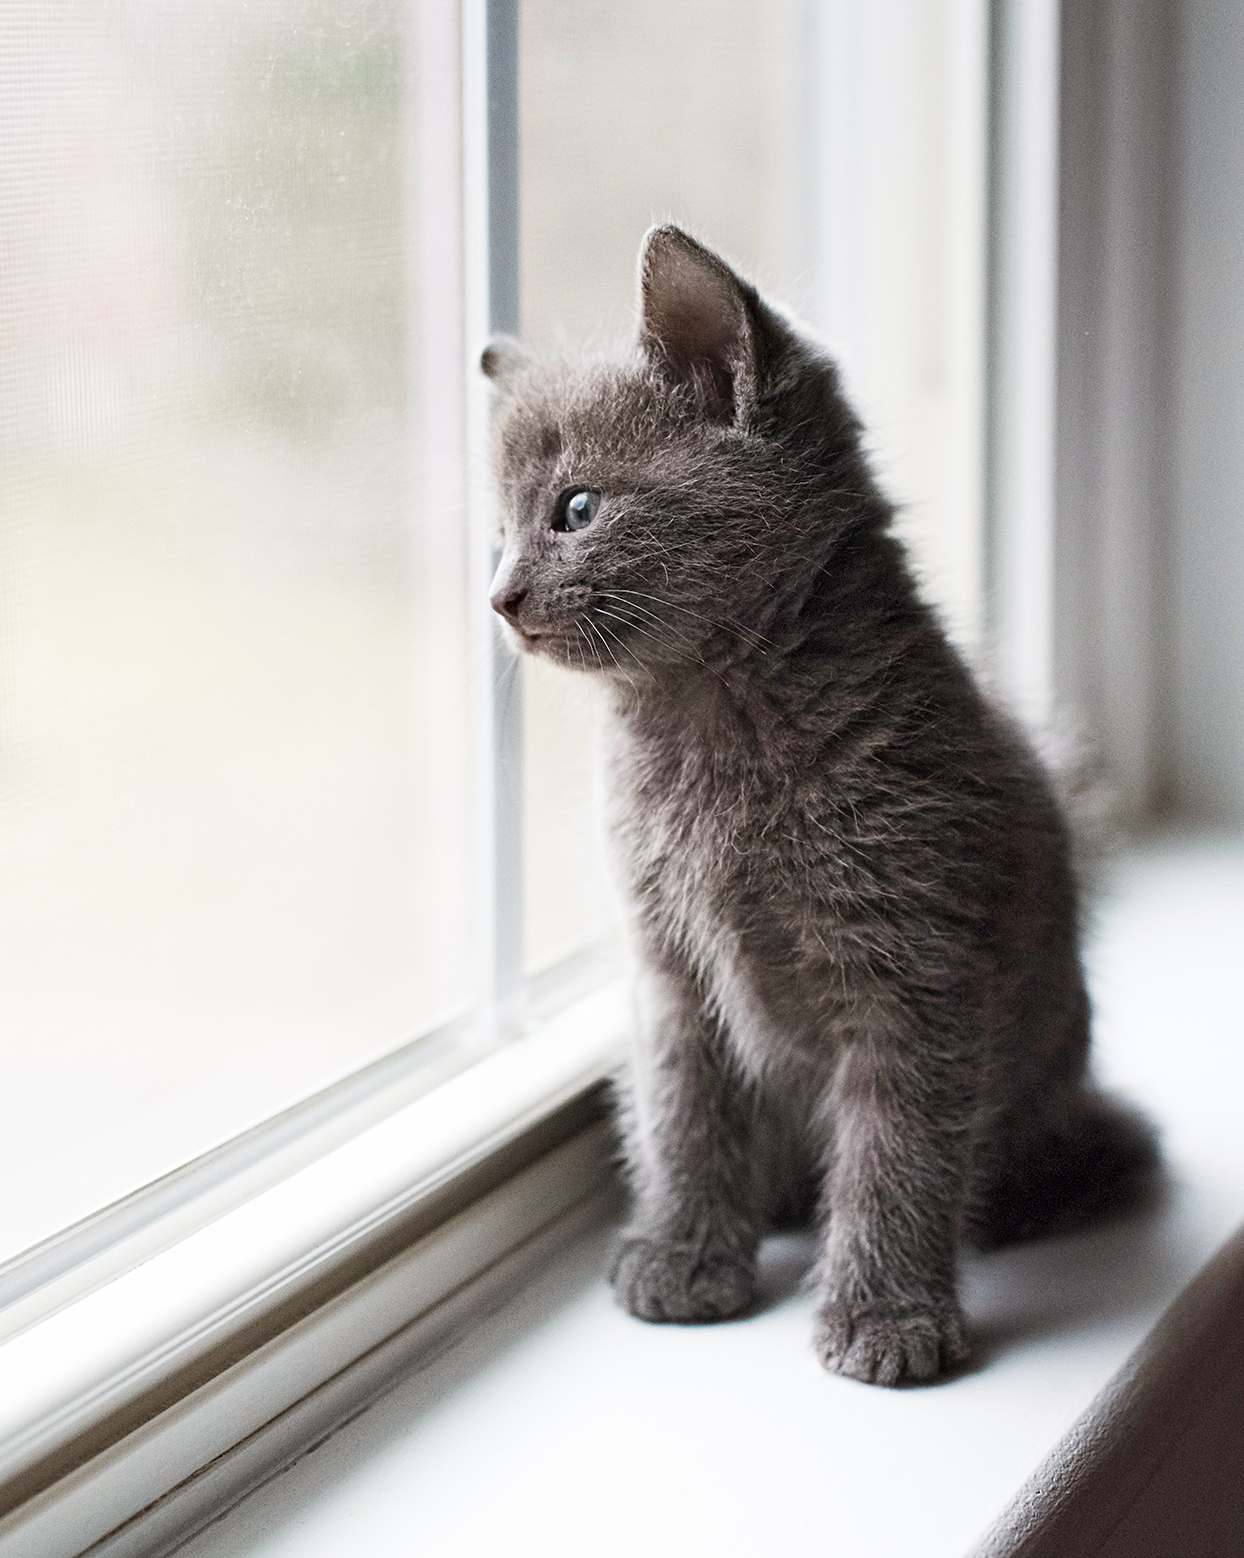 small russian blue kitten sitting on a white window ledge looking out the window